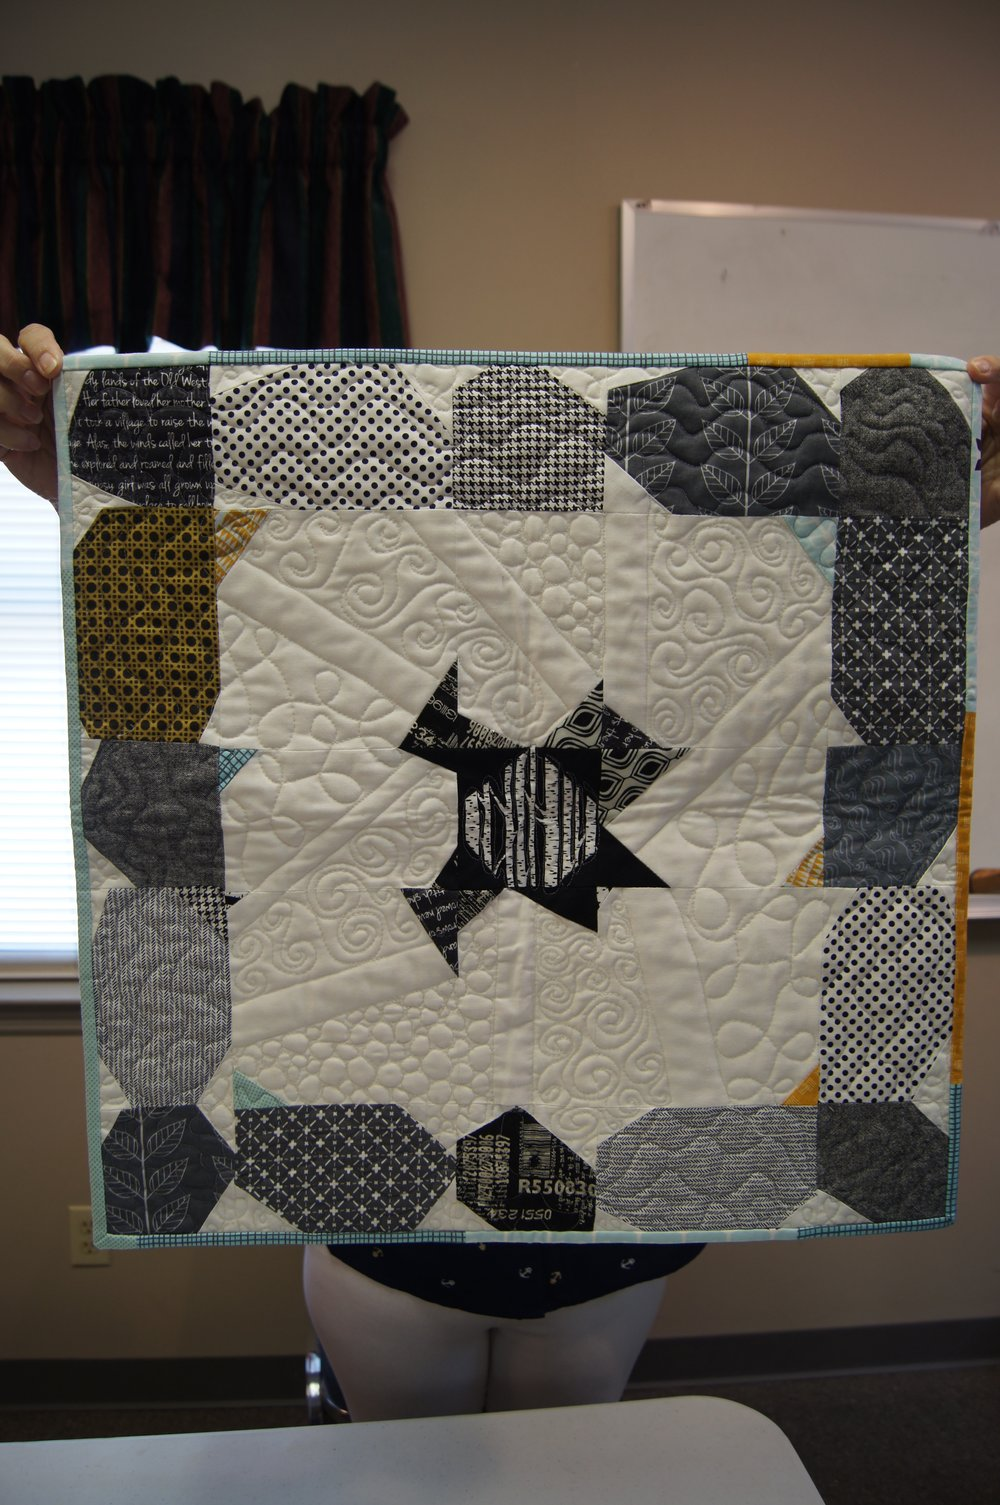 This is the quilt Denise received from her partner